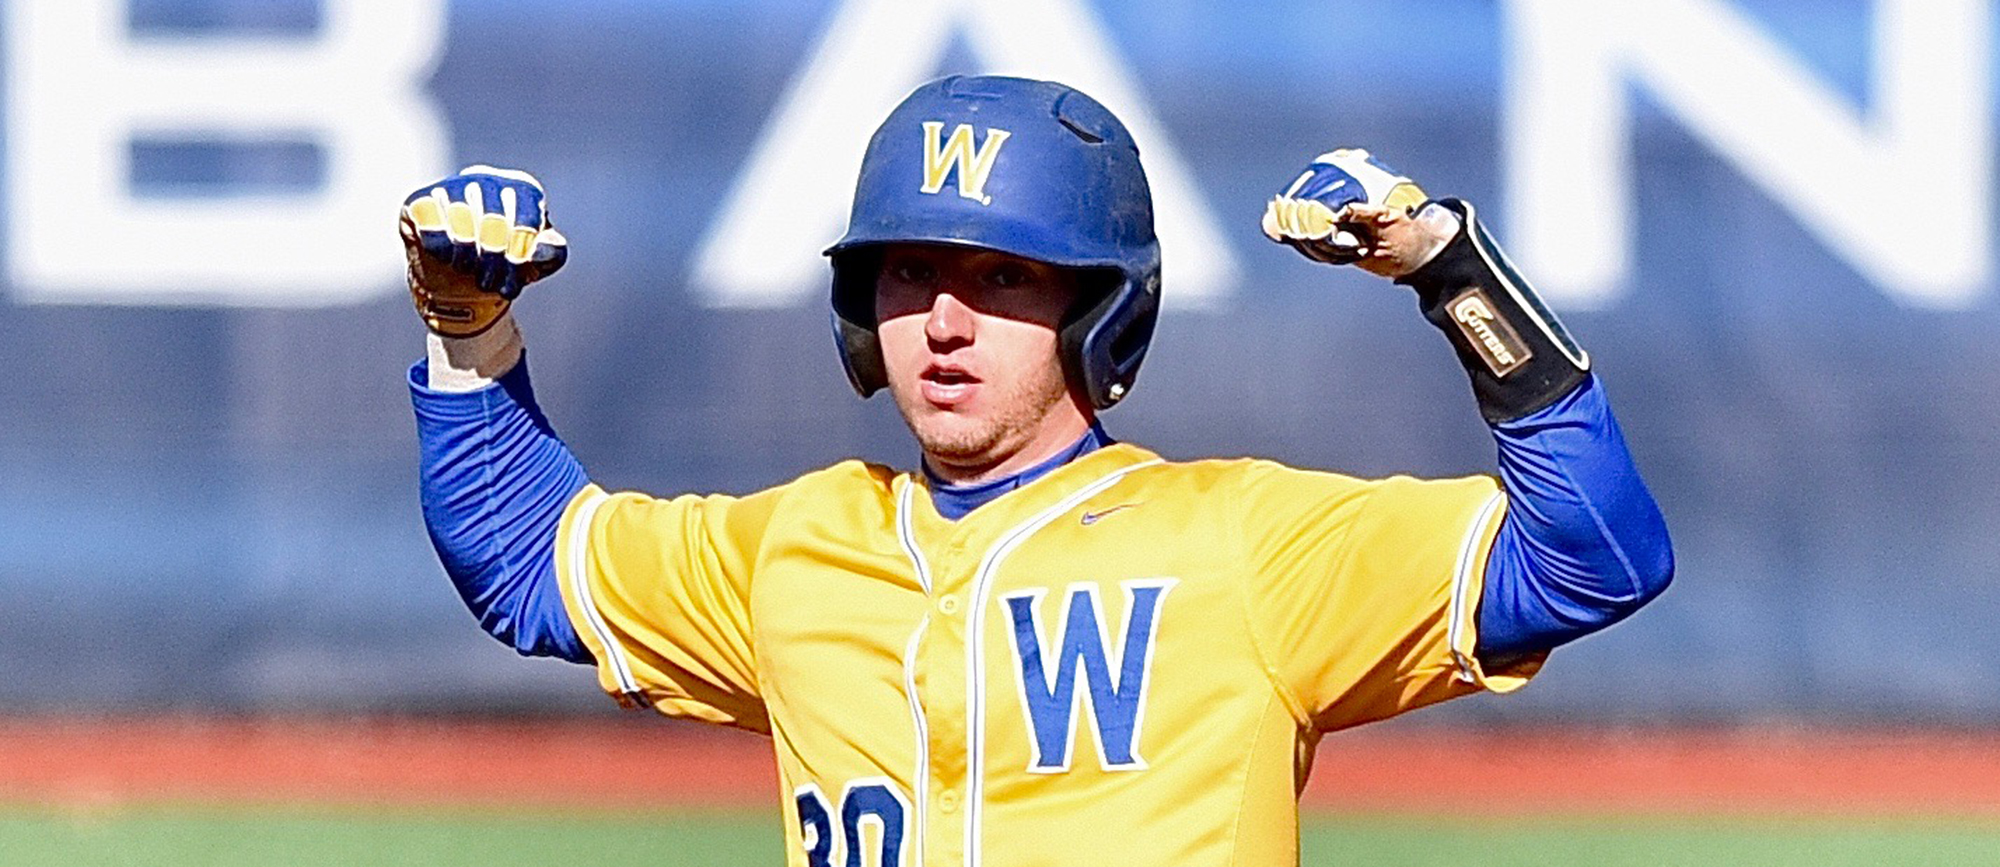 Brian Valeriano went 3-for-7 at the plate with a triple, a home run and three RBI as Western New England defeated No. 23 UMass Boston 20-8 on Thursday. (Photo by Jim Balderston)